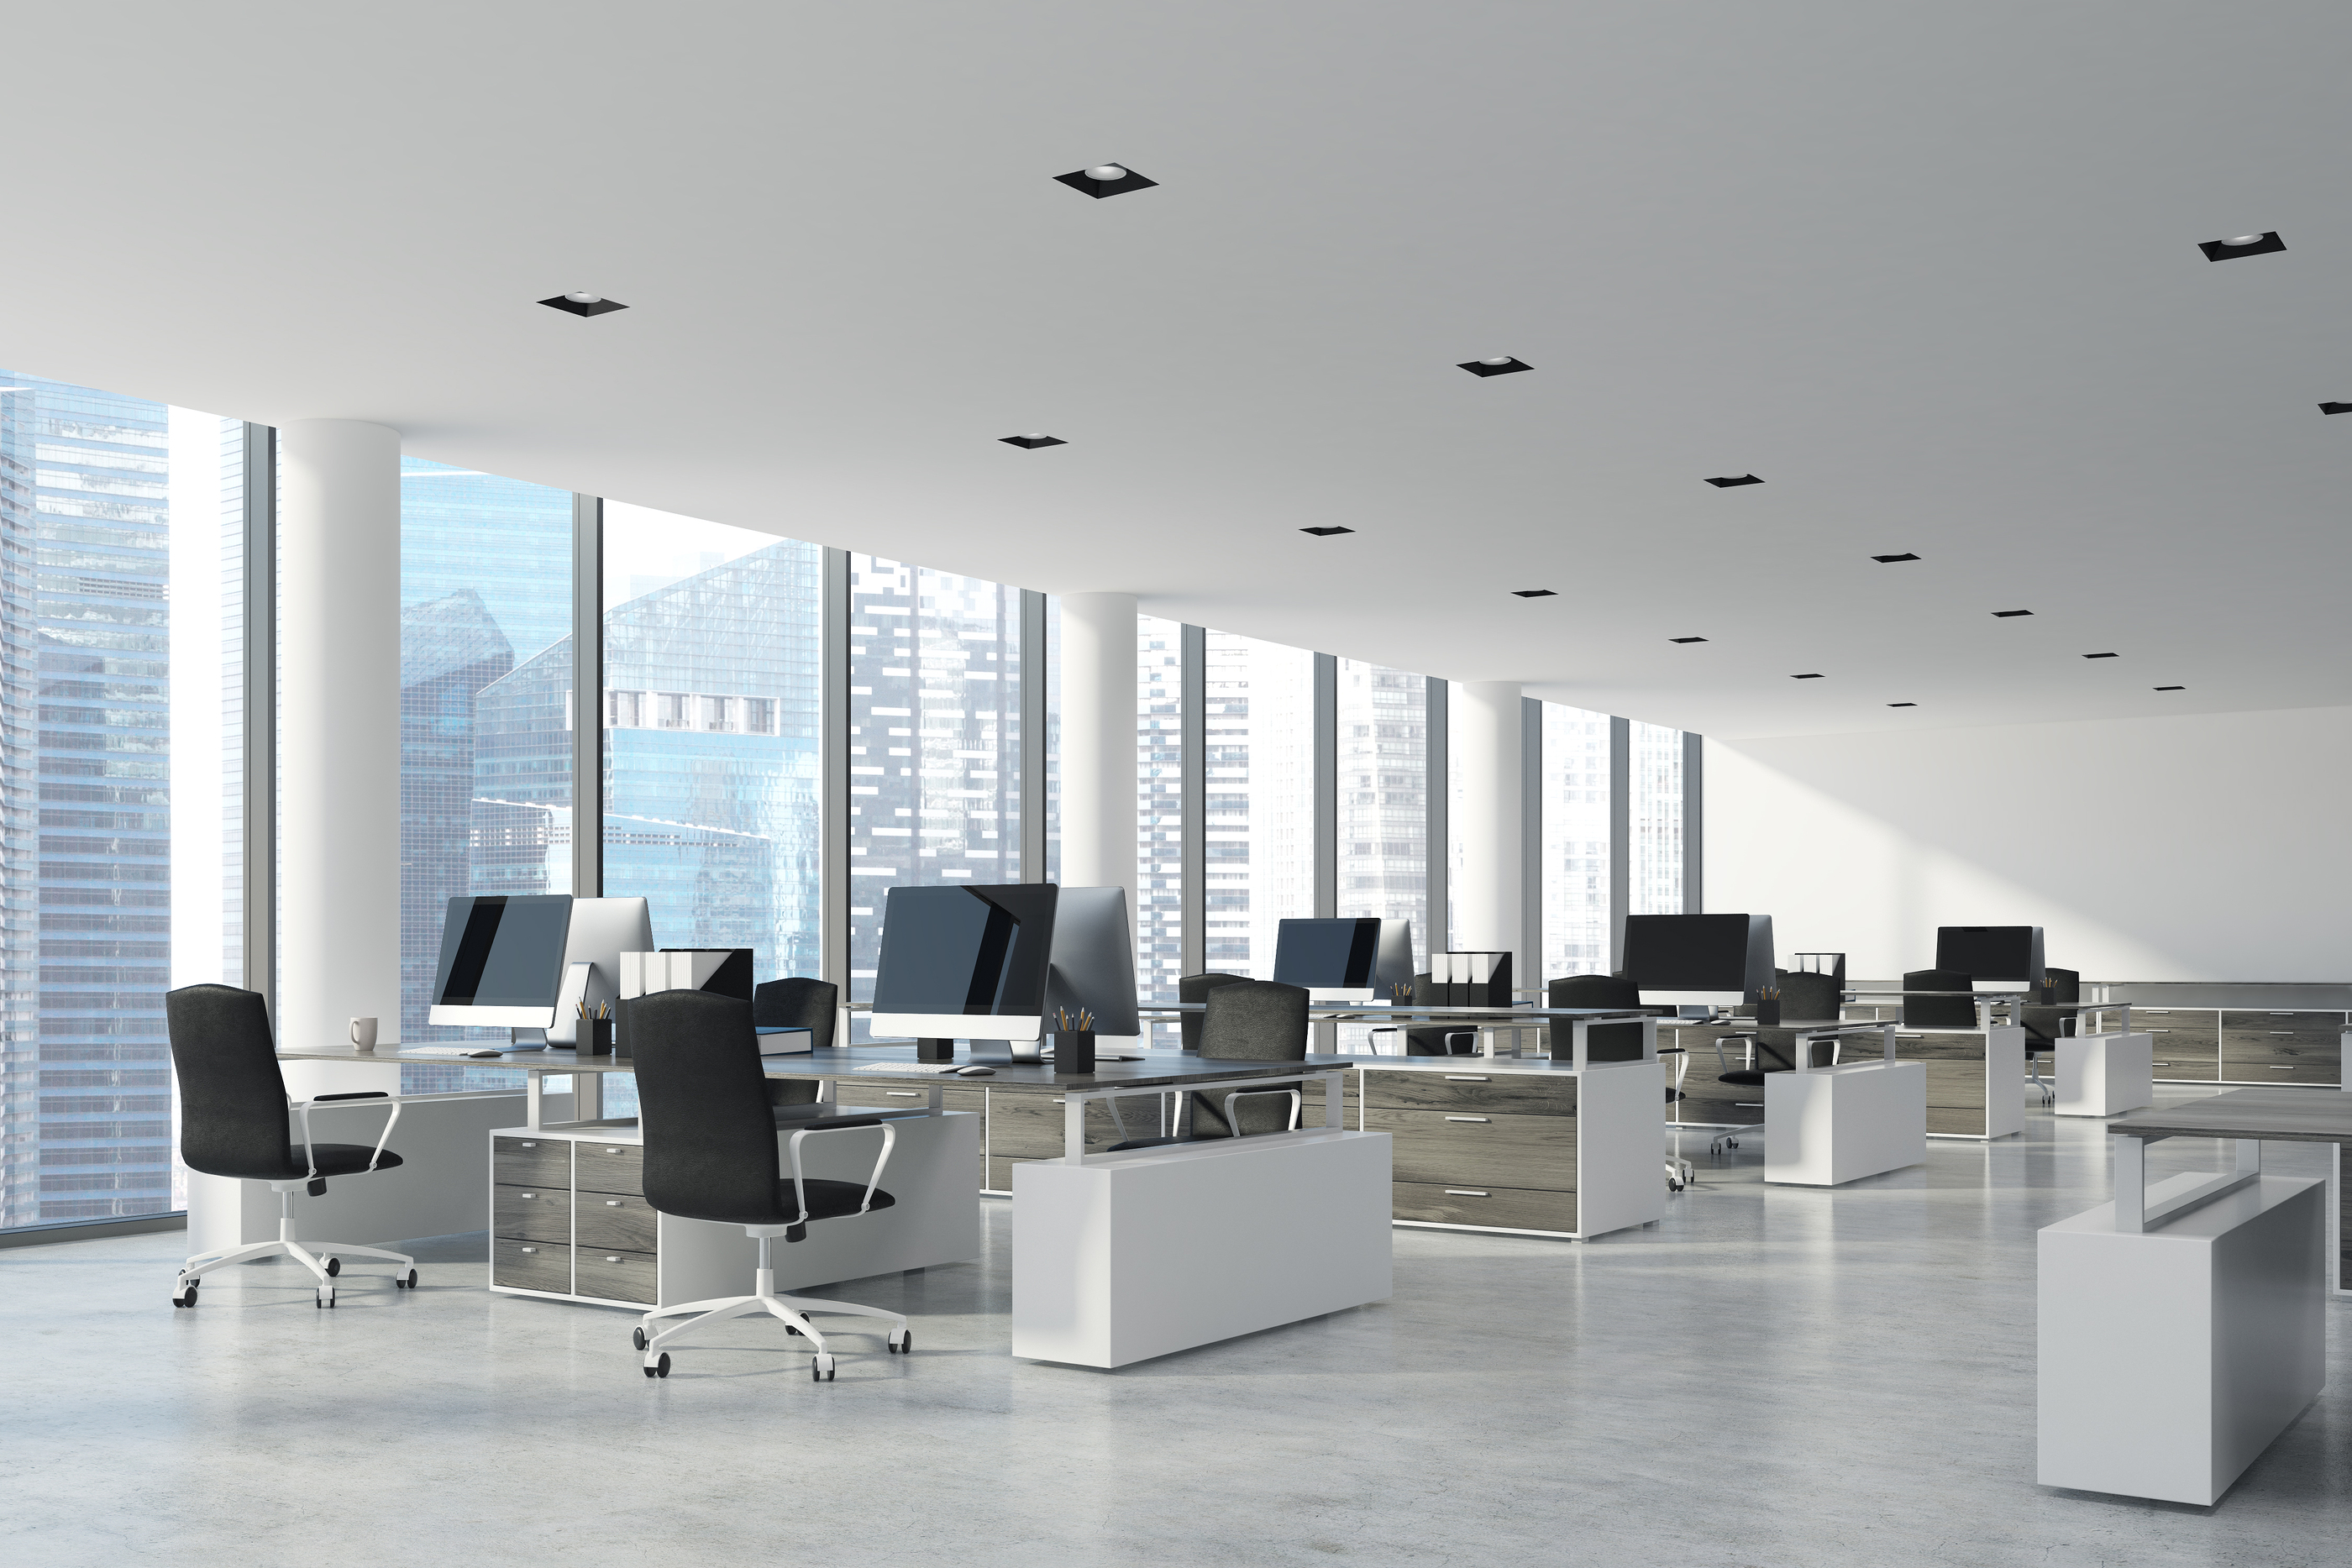 Workplace in an open office with white ceilings and walls and concrete floor